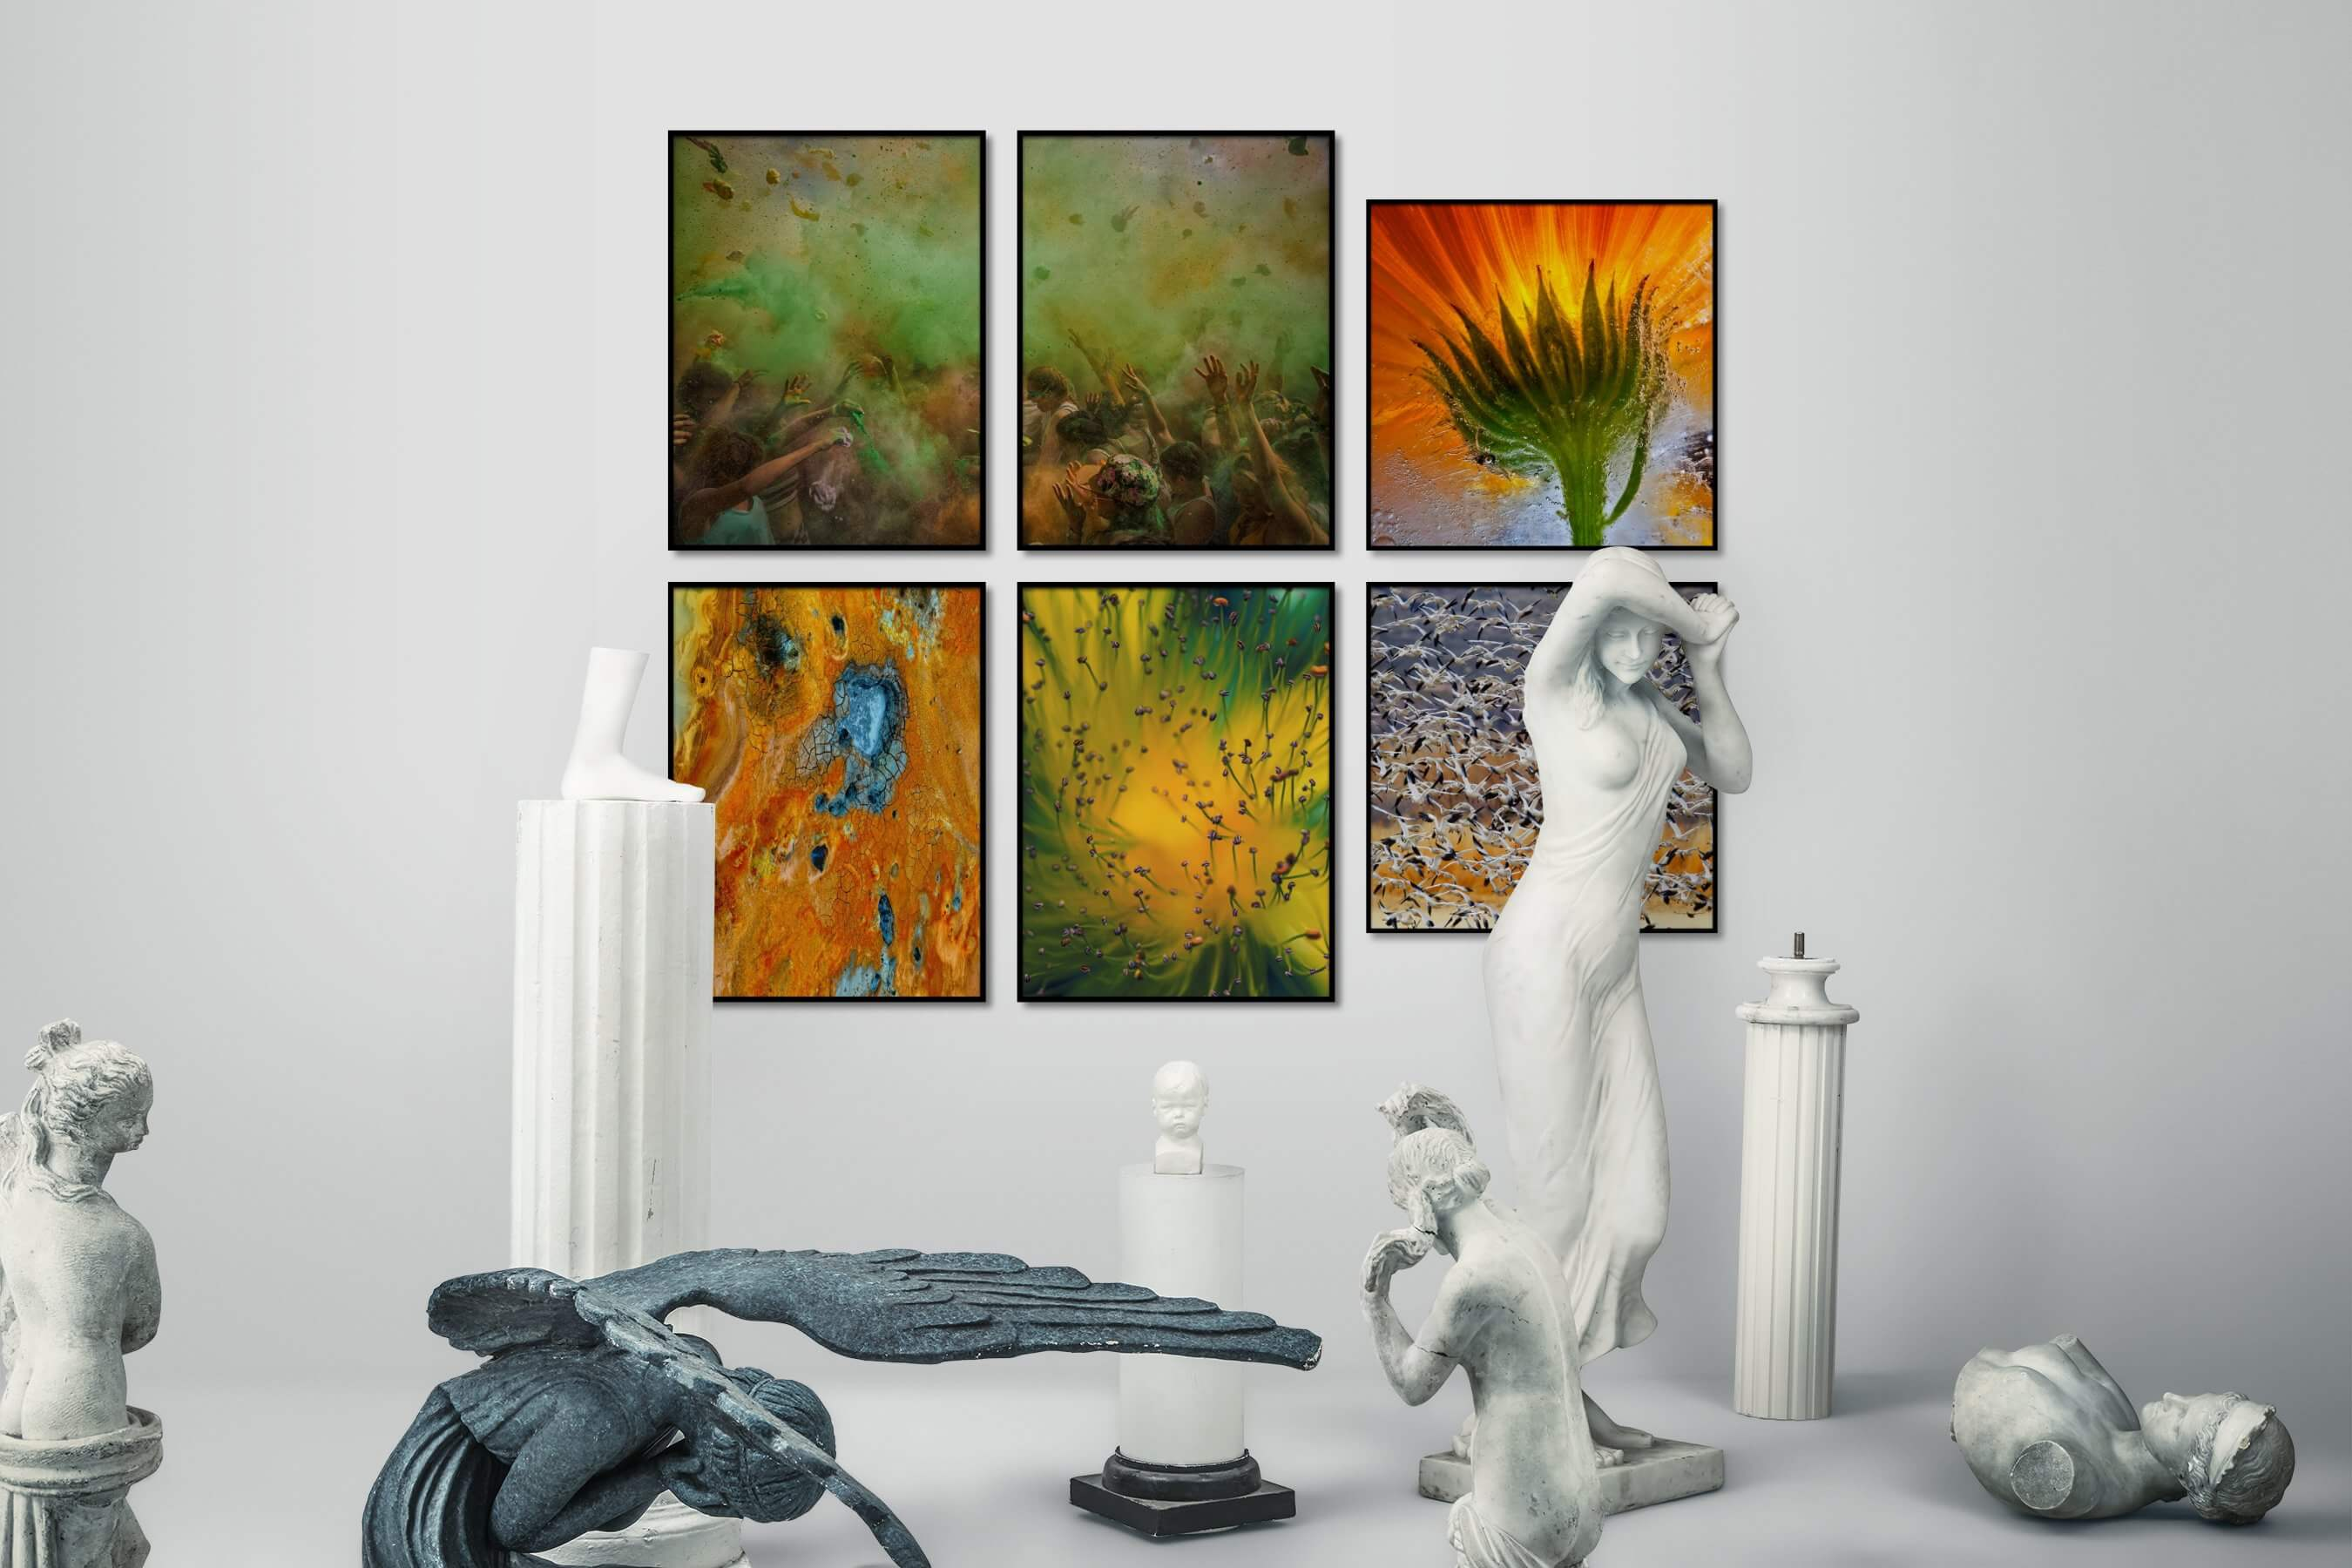 Gallery wall idea with six framed pictures arranged on a wall depicting Fashion & Beauty, For the Moderate, Colorful, For the Maximalist, Nature, Flowers & Plants, and Animals